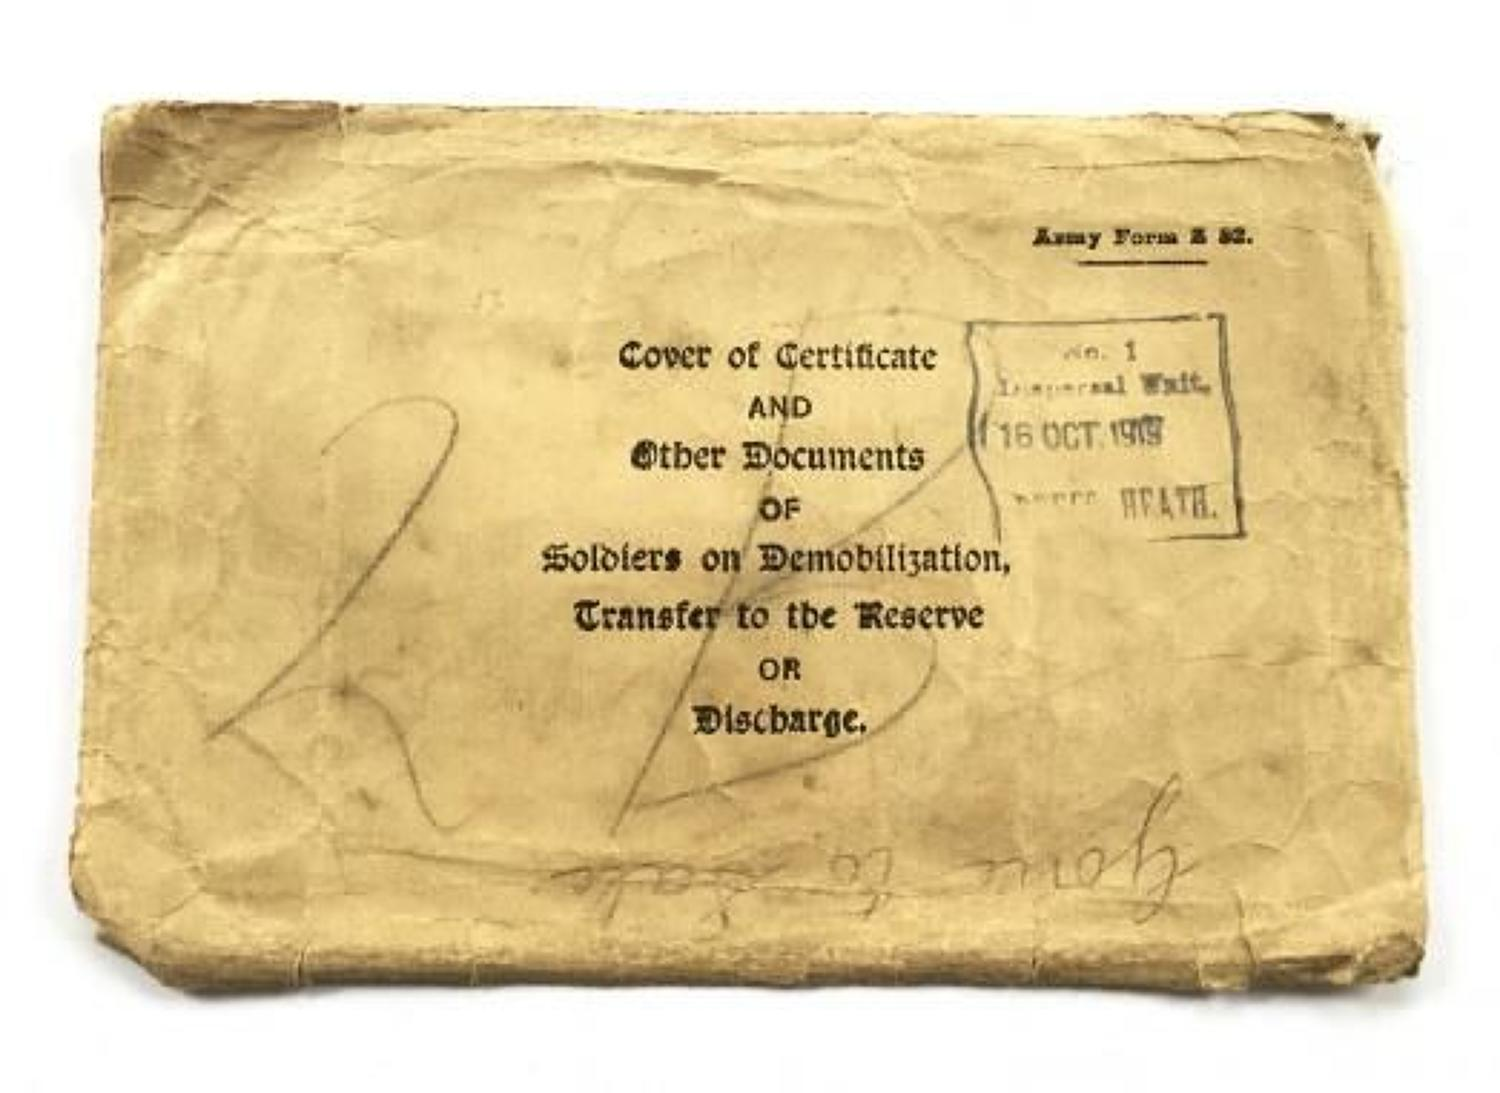 WW1 British Army Discharge Certificate Envelope.